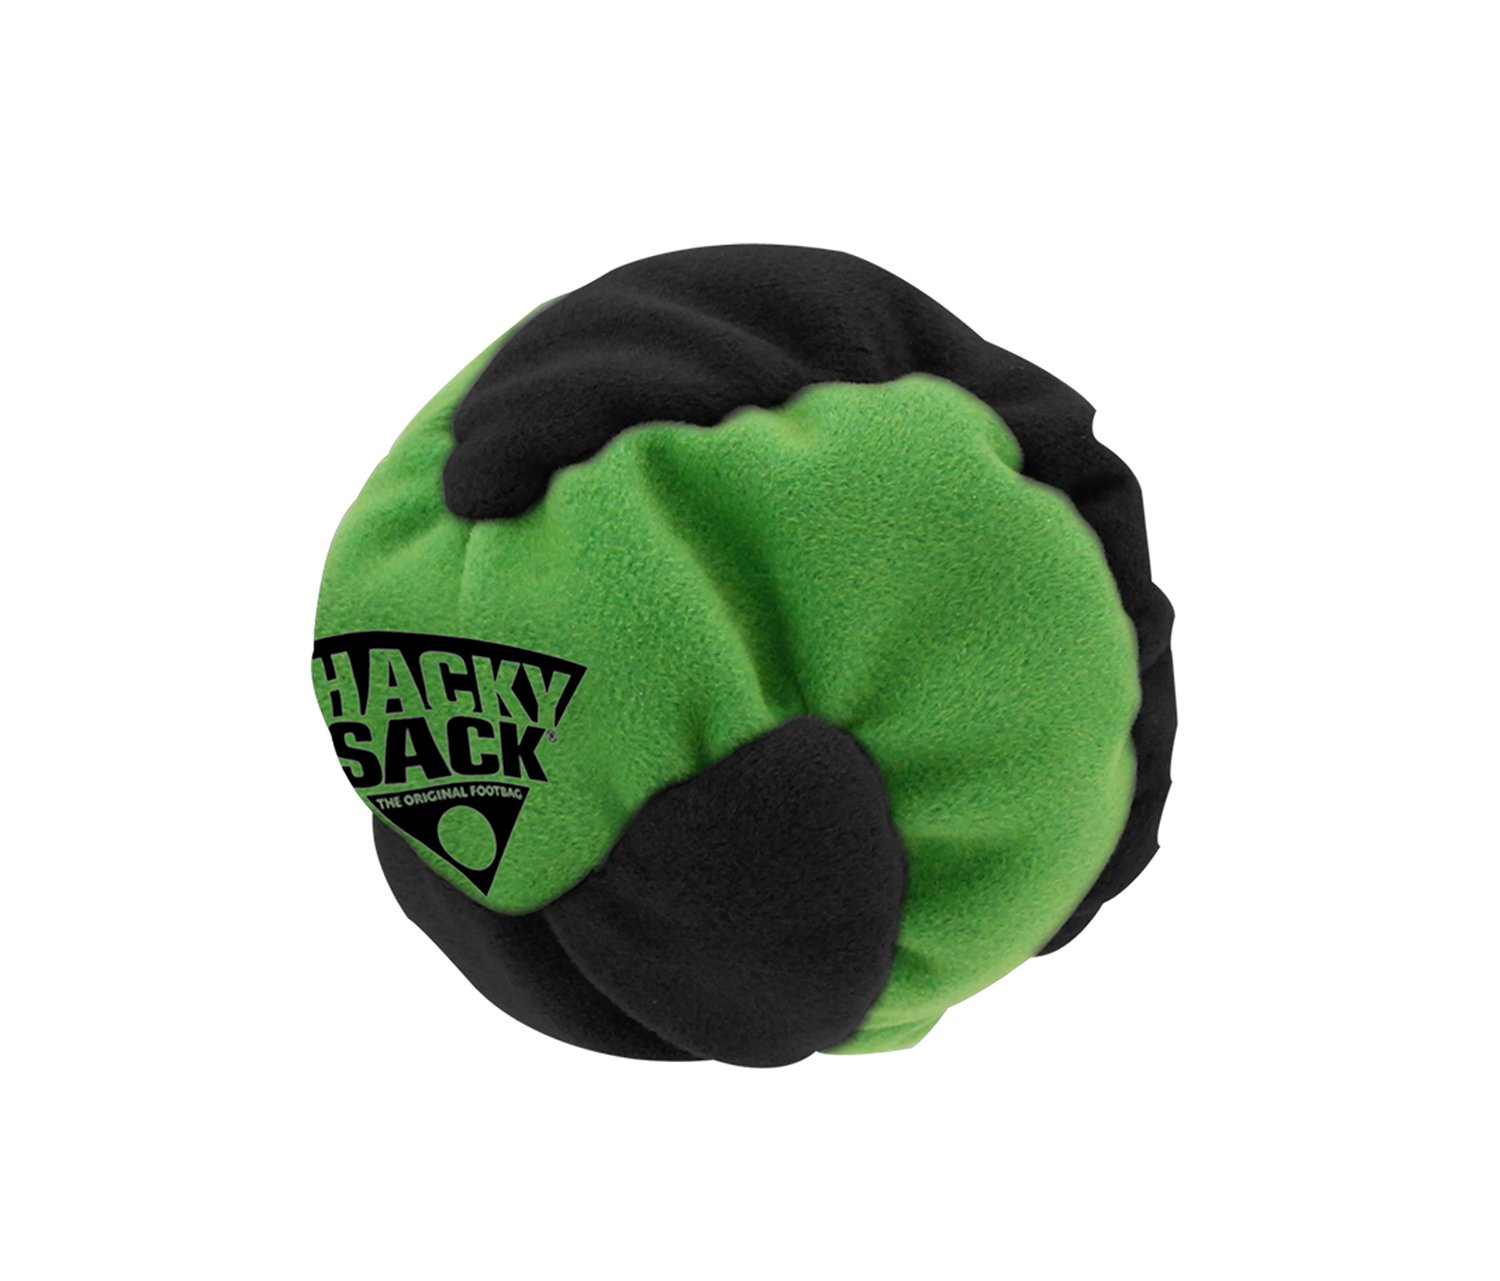 Mozlly Multipack - Wham-O Hacky Sack Impact - 1.9 inch - Foot Toss Toy (Pack of 3) - Item #S119040_X3 by Mozlly